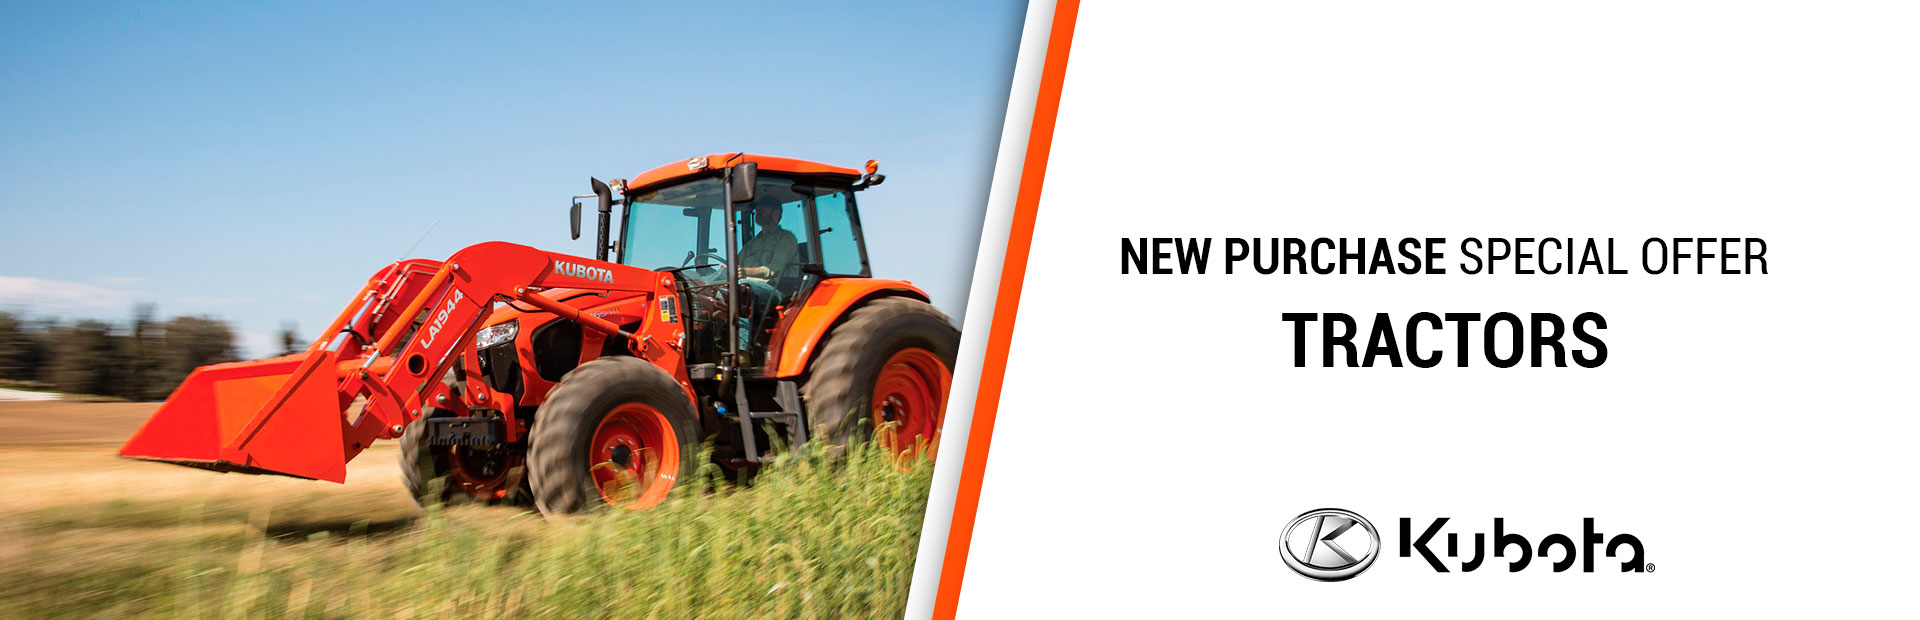 New Purchase Special Offers - Tractors